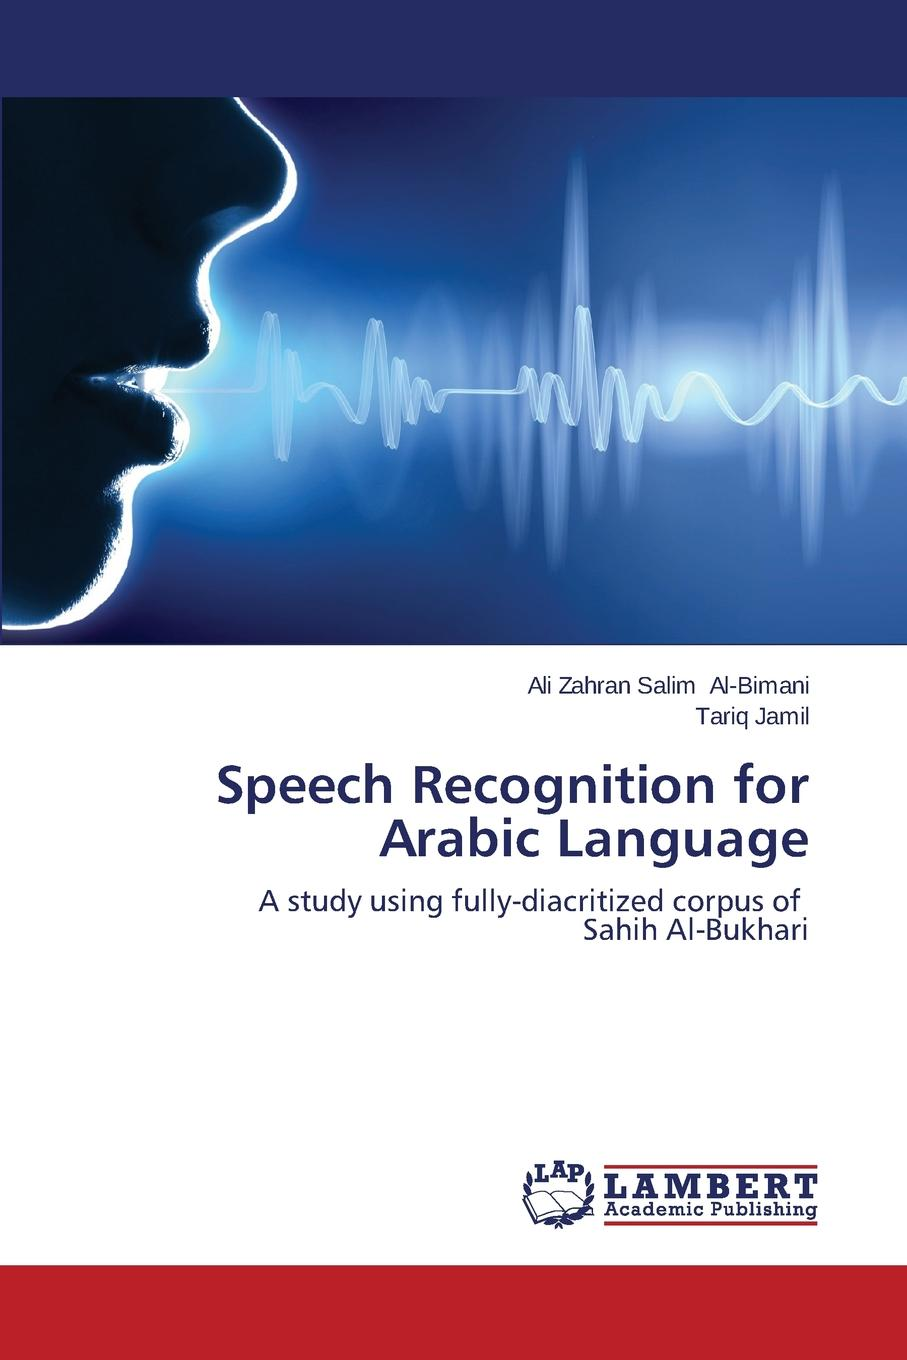 цена Al-Bimani Ali Zahran Salim Speech Recognition for Arabic Language в интернет-магазинах